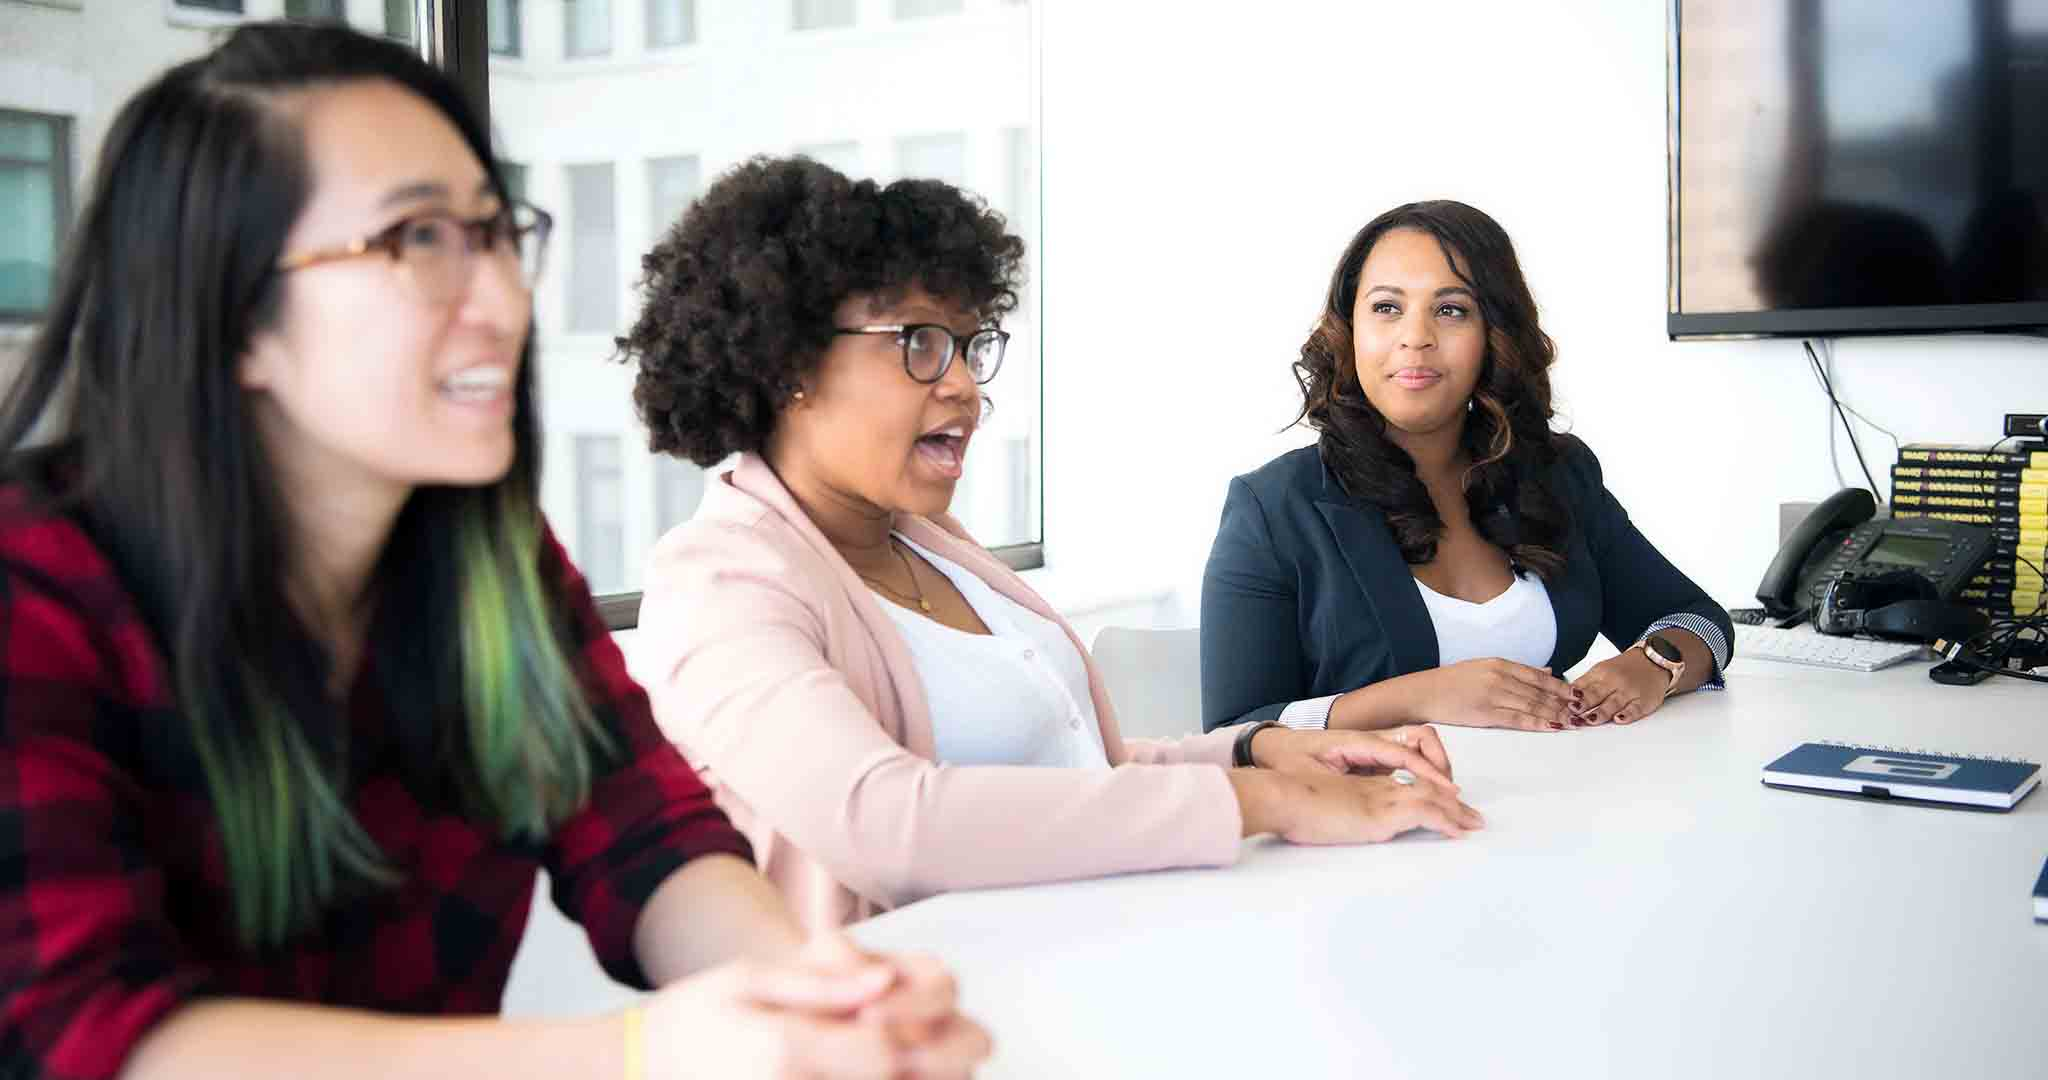 adult cooperation desk meeting stock photos